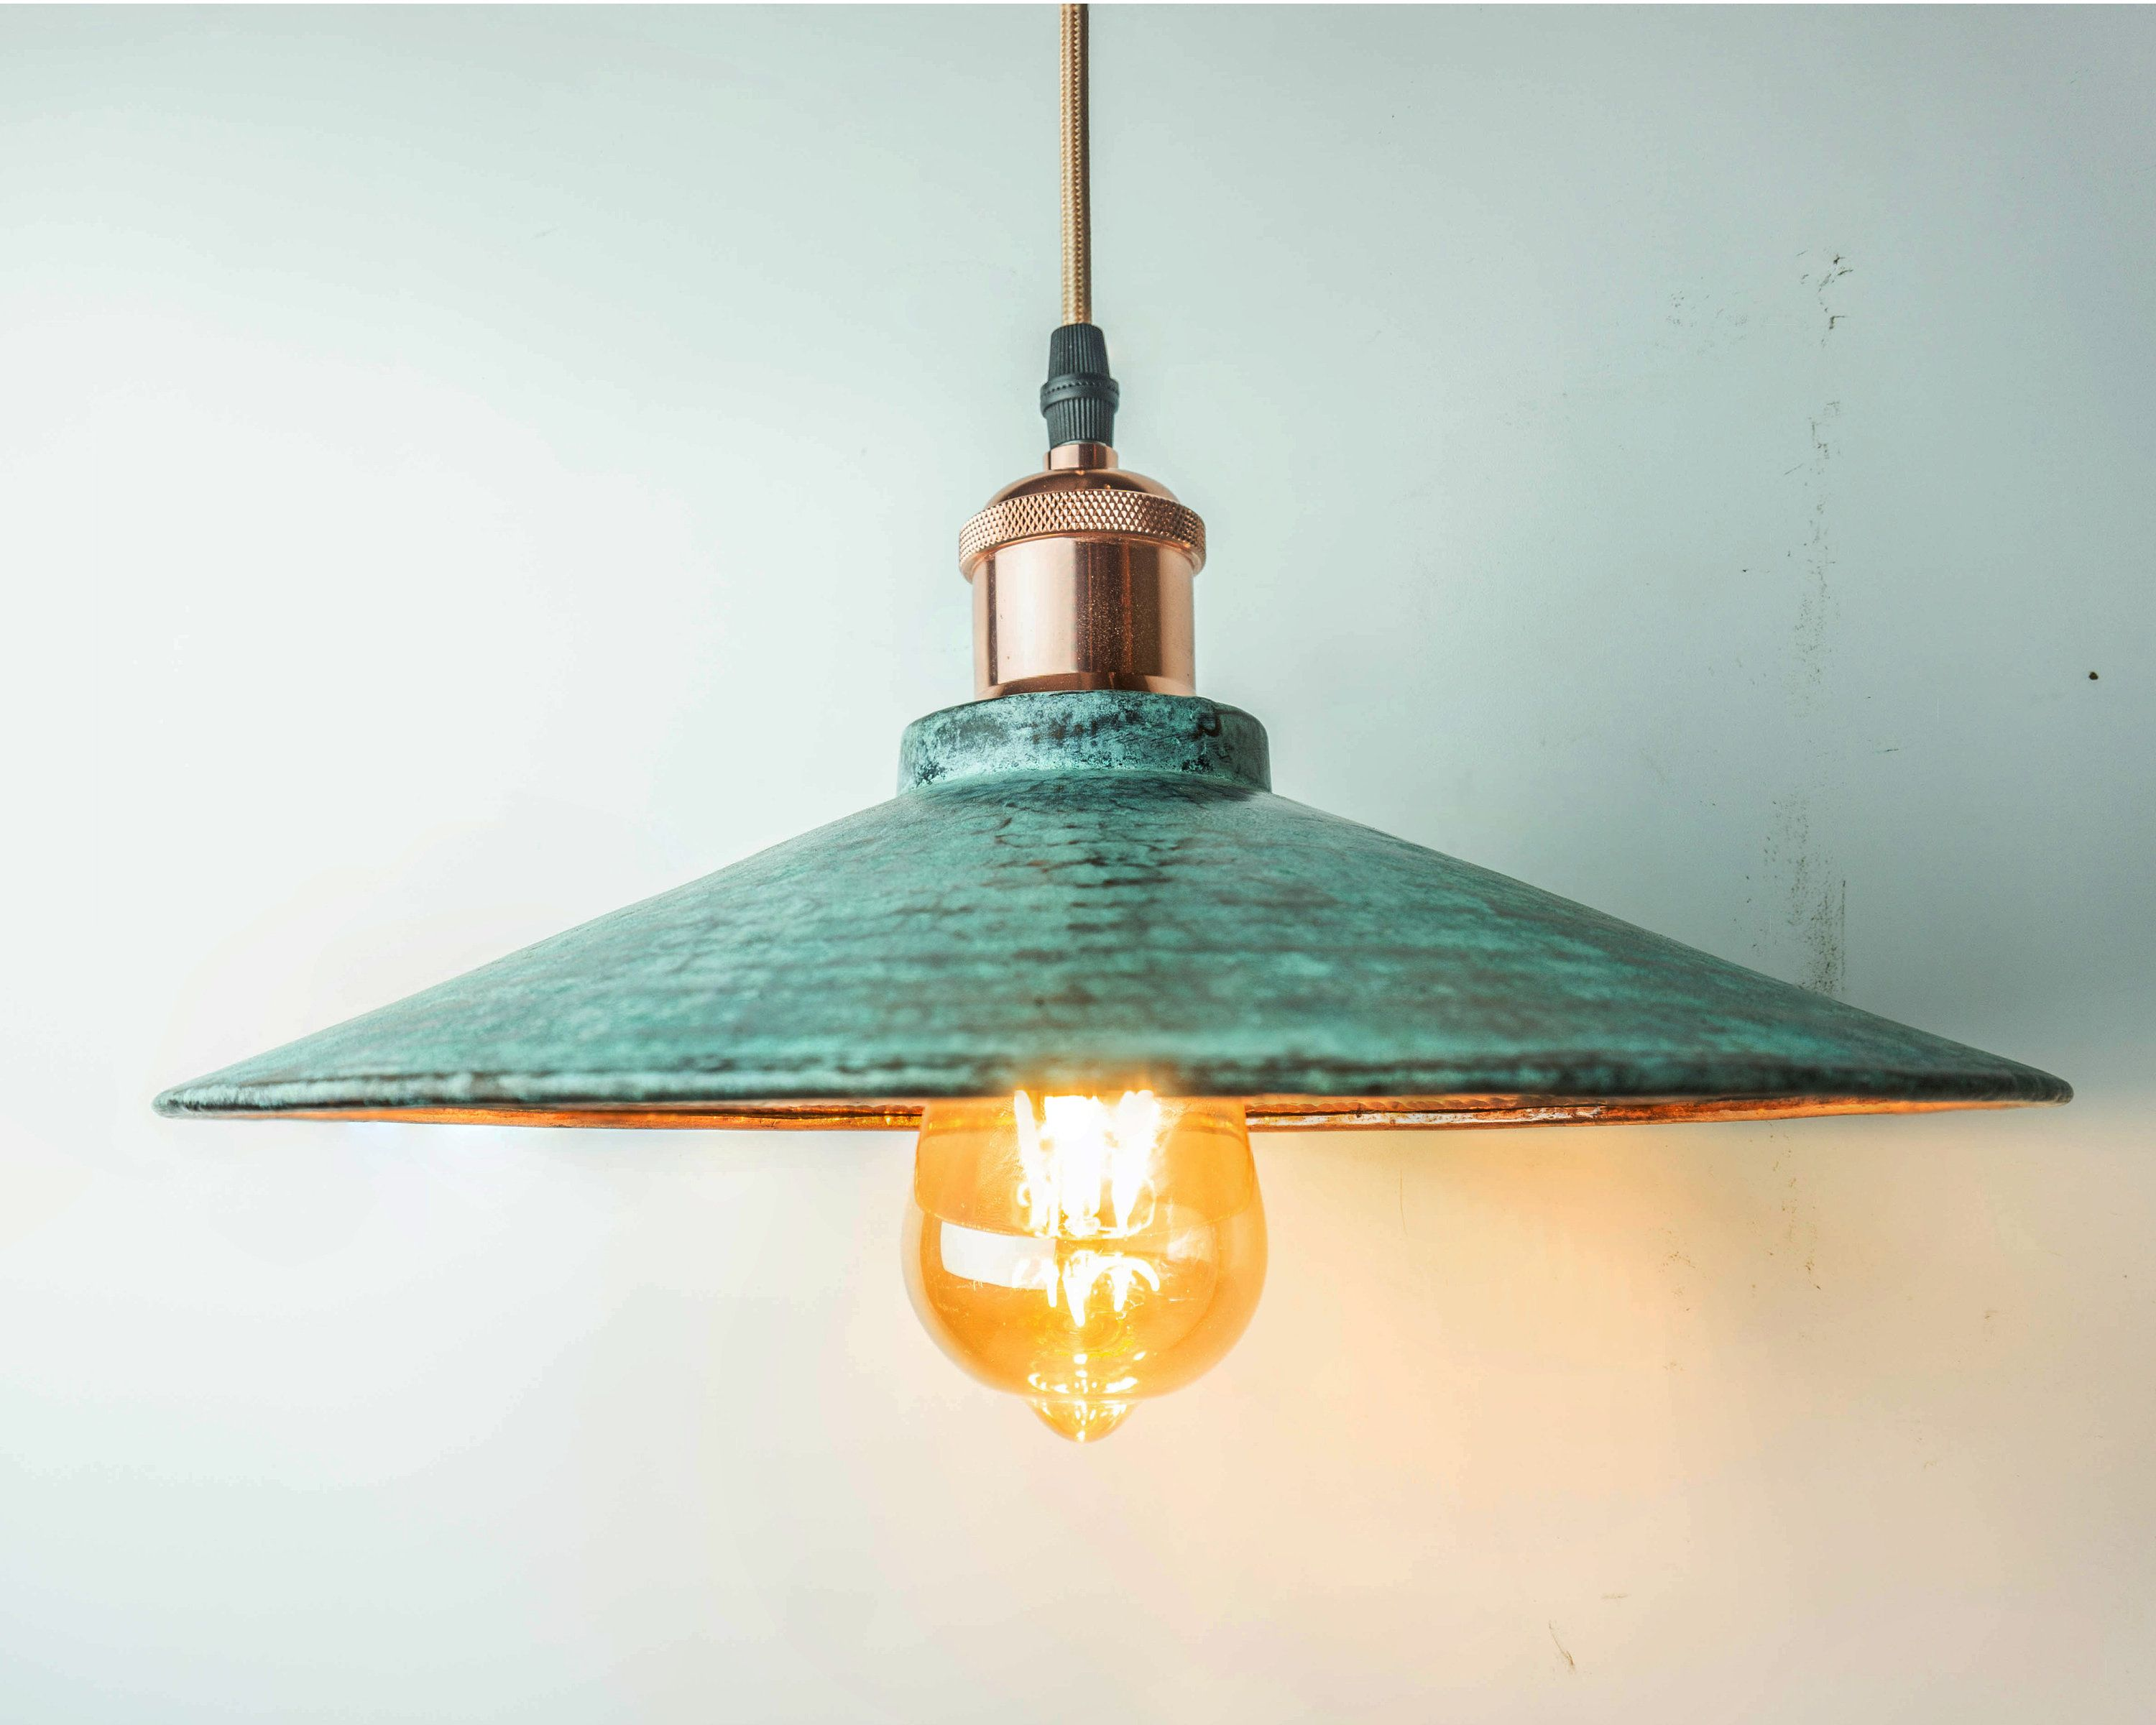 Oxidized Copper Pendant Light Copper Industrial Lighting Copper Kitchen Island Light Copper Lampshade Art Deco Lamp By Cangcimencraft On Etsy